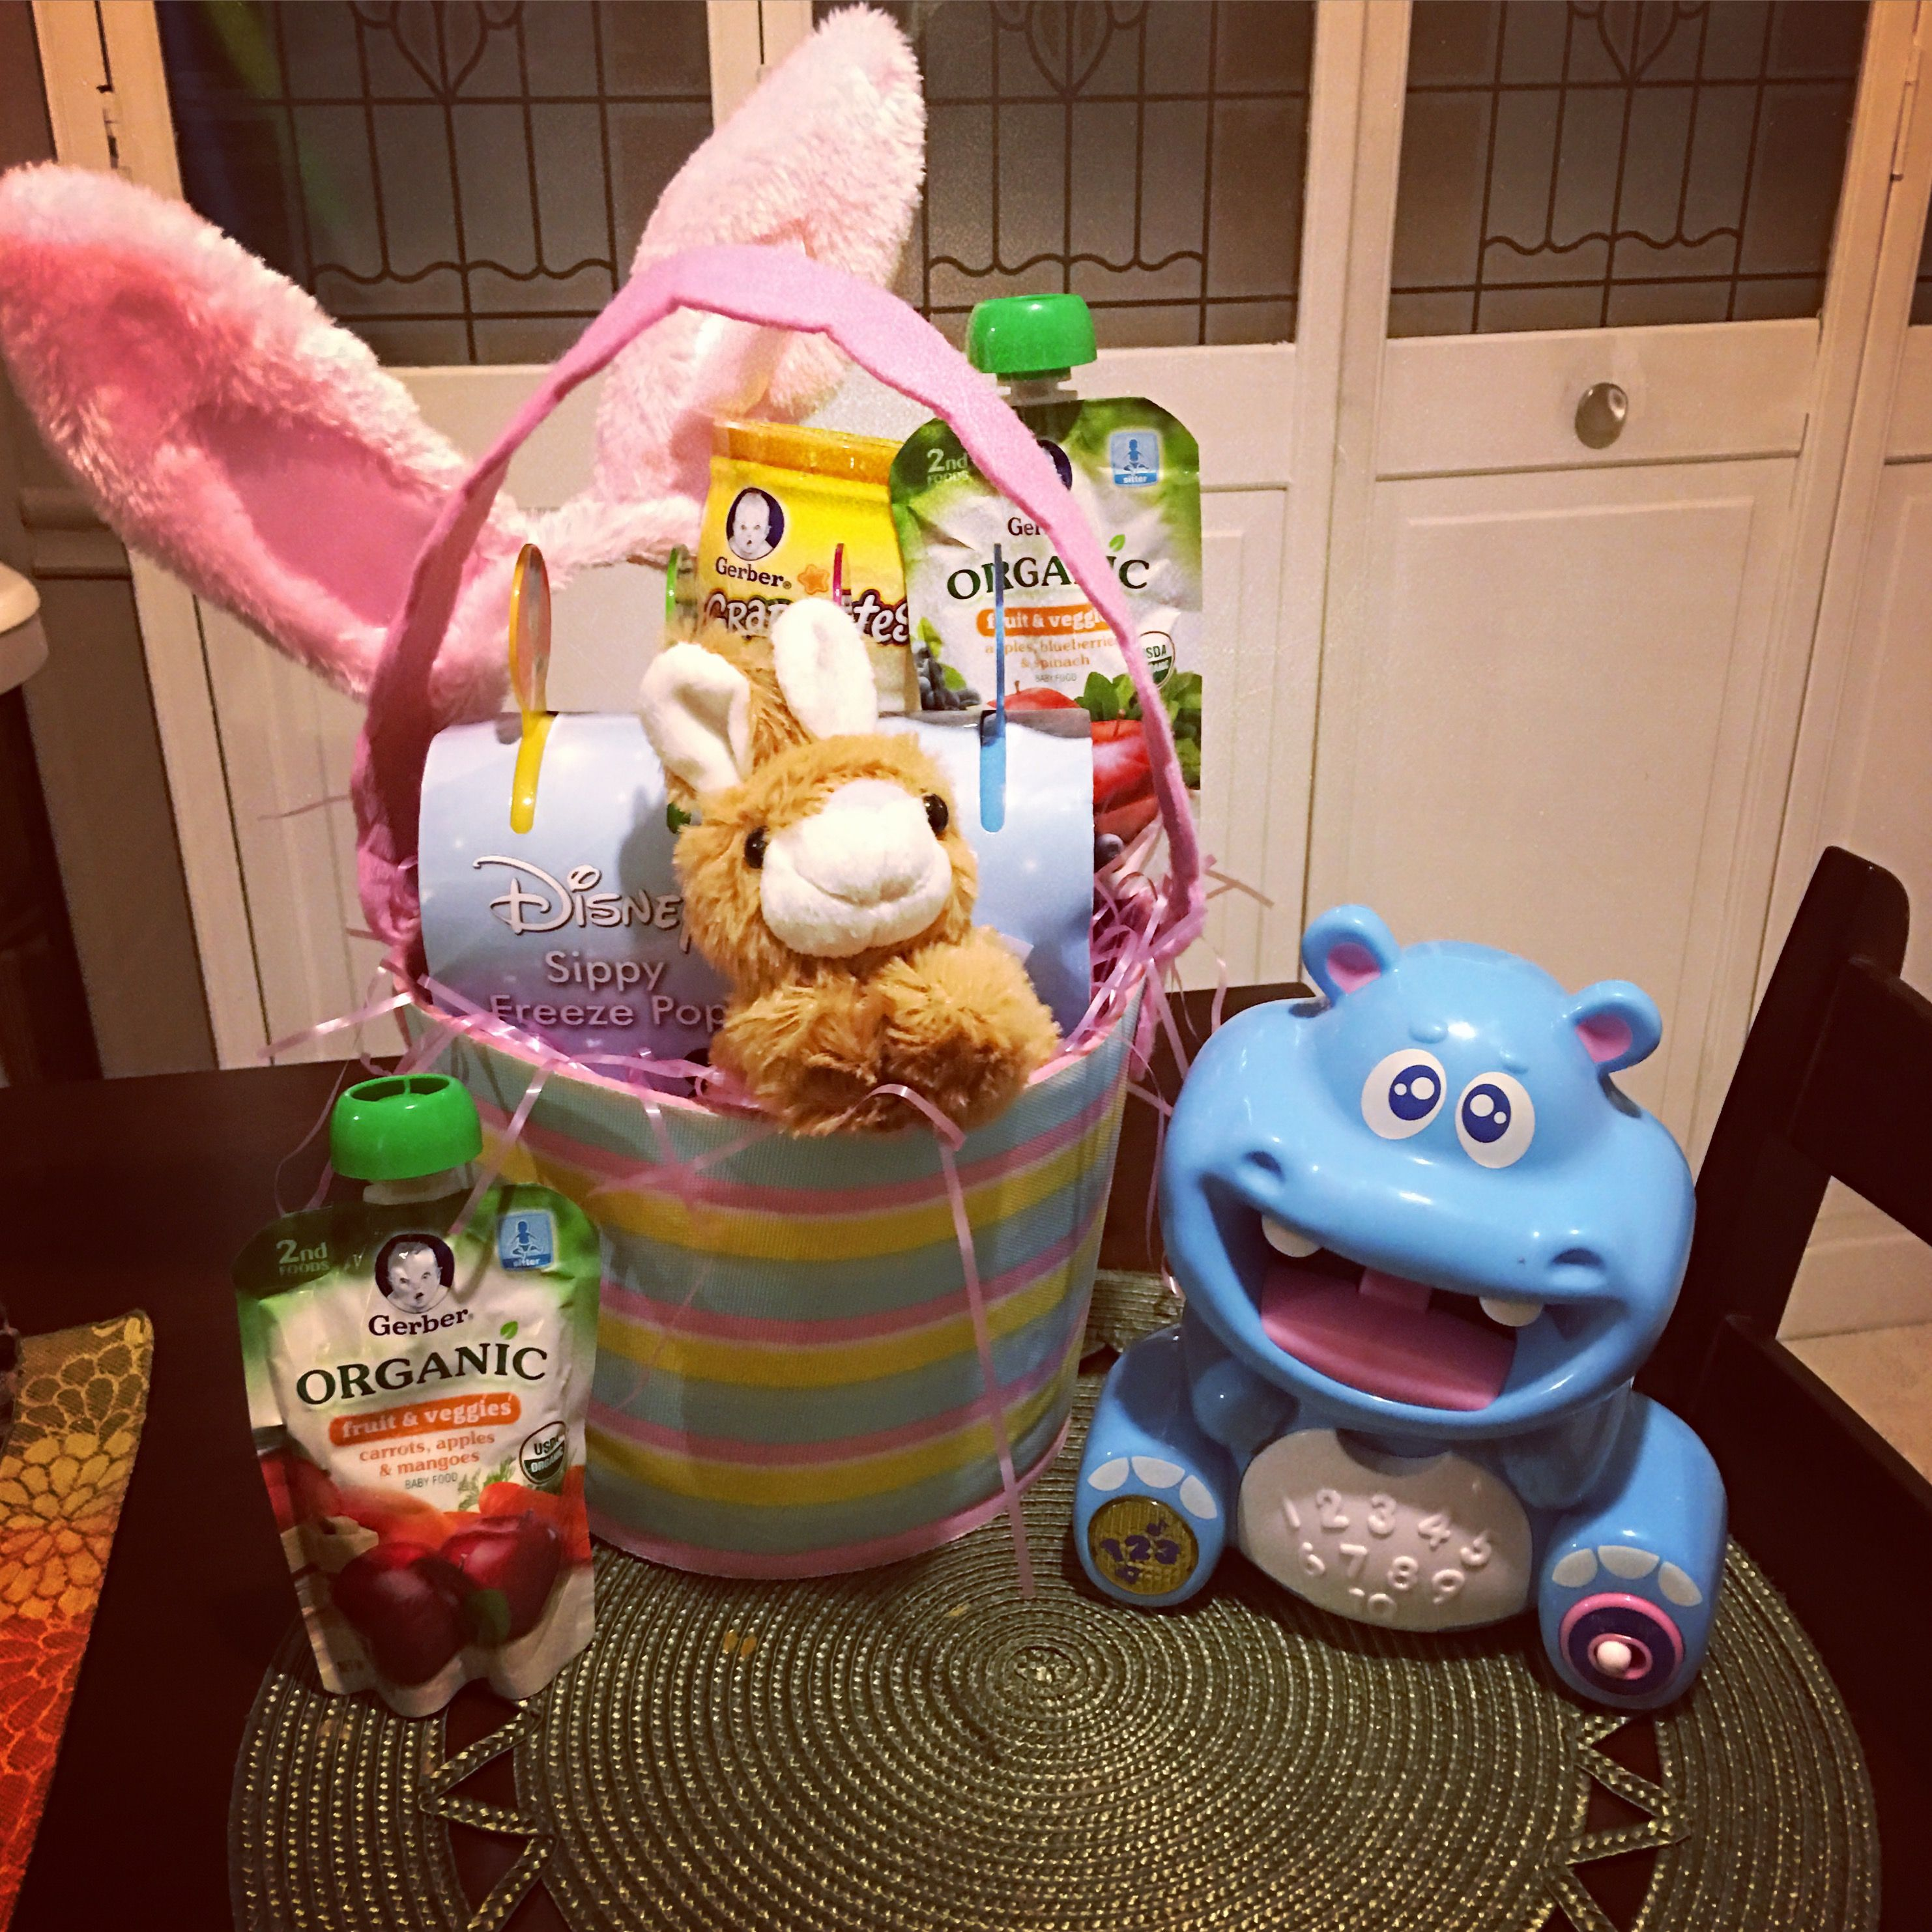 Babys first easter basket kept it sugar free for my daughters babys first easter basket kept it sugar free for my daughters first easter negle Image collections